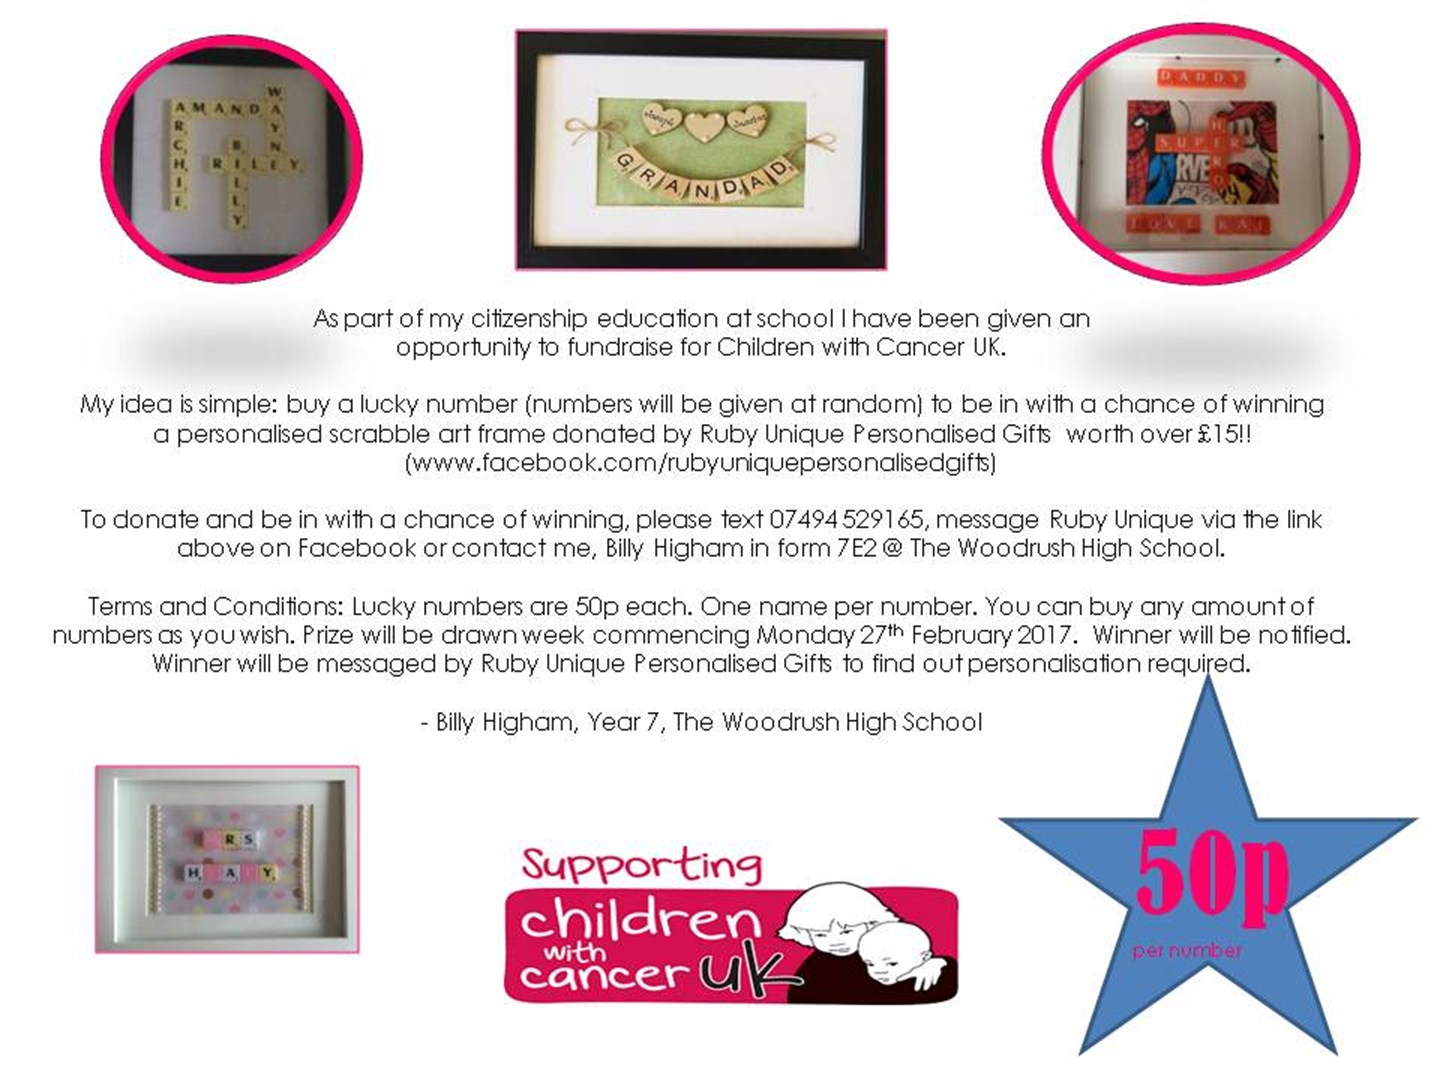 Amanda Higham is fundraising for Children with Cancer UK